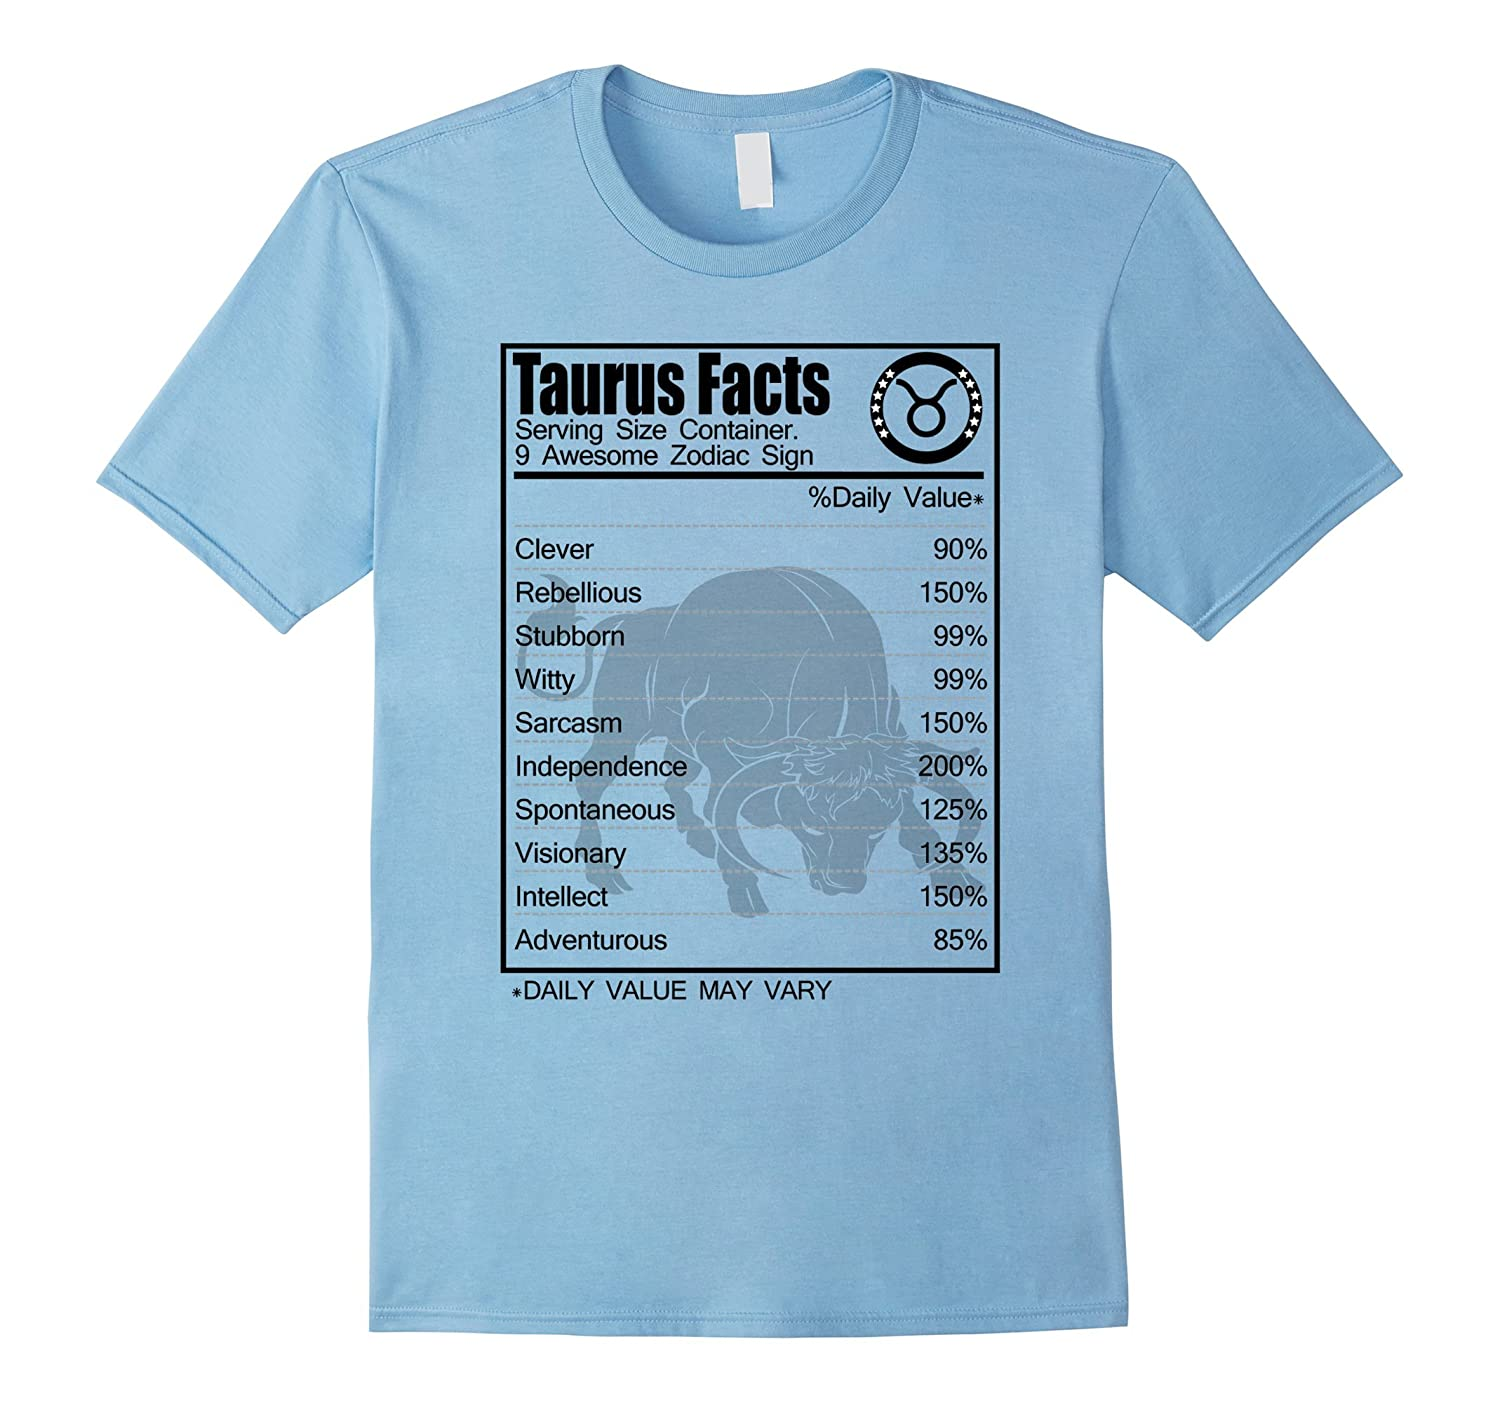 Taurus Facts Awesome Zodiac T-shirt Clever Rebellious-CD